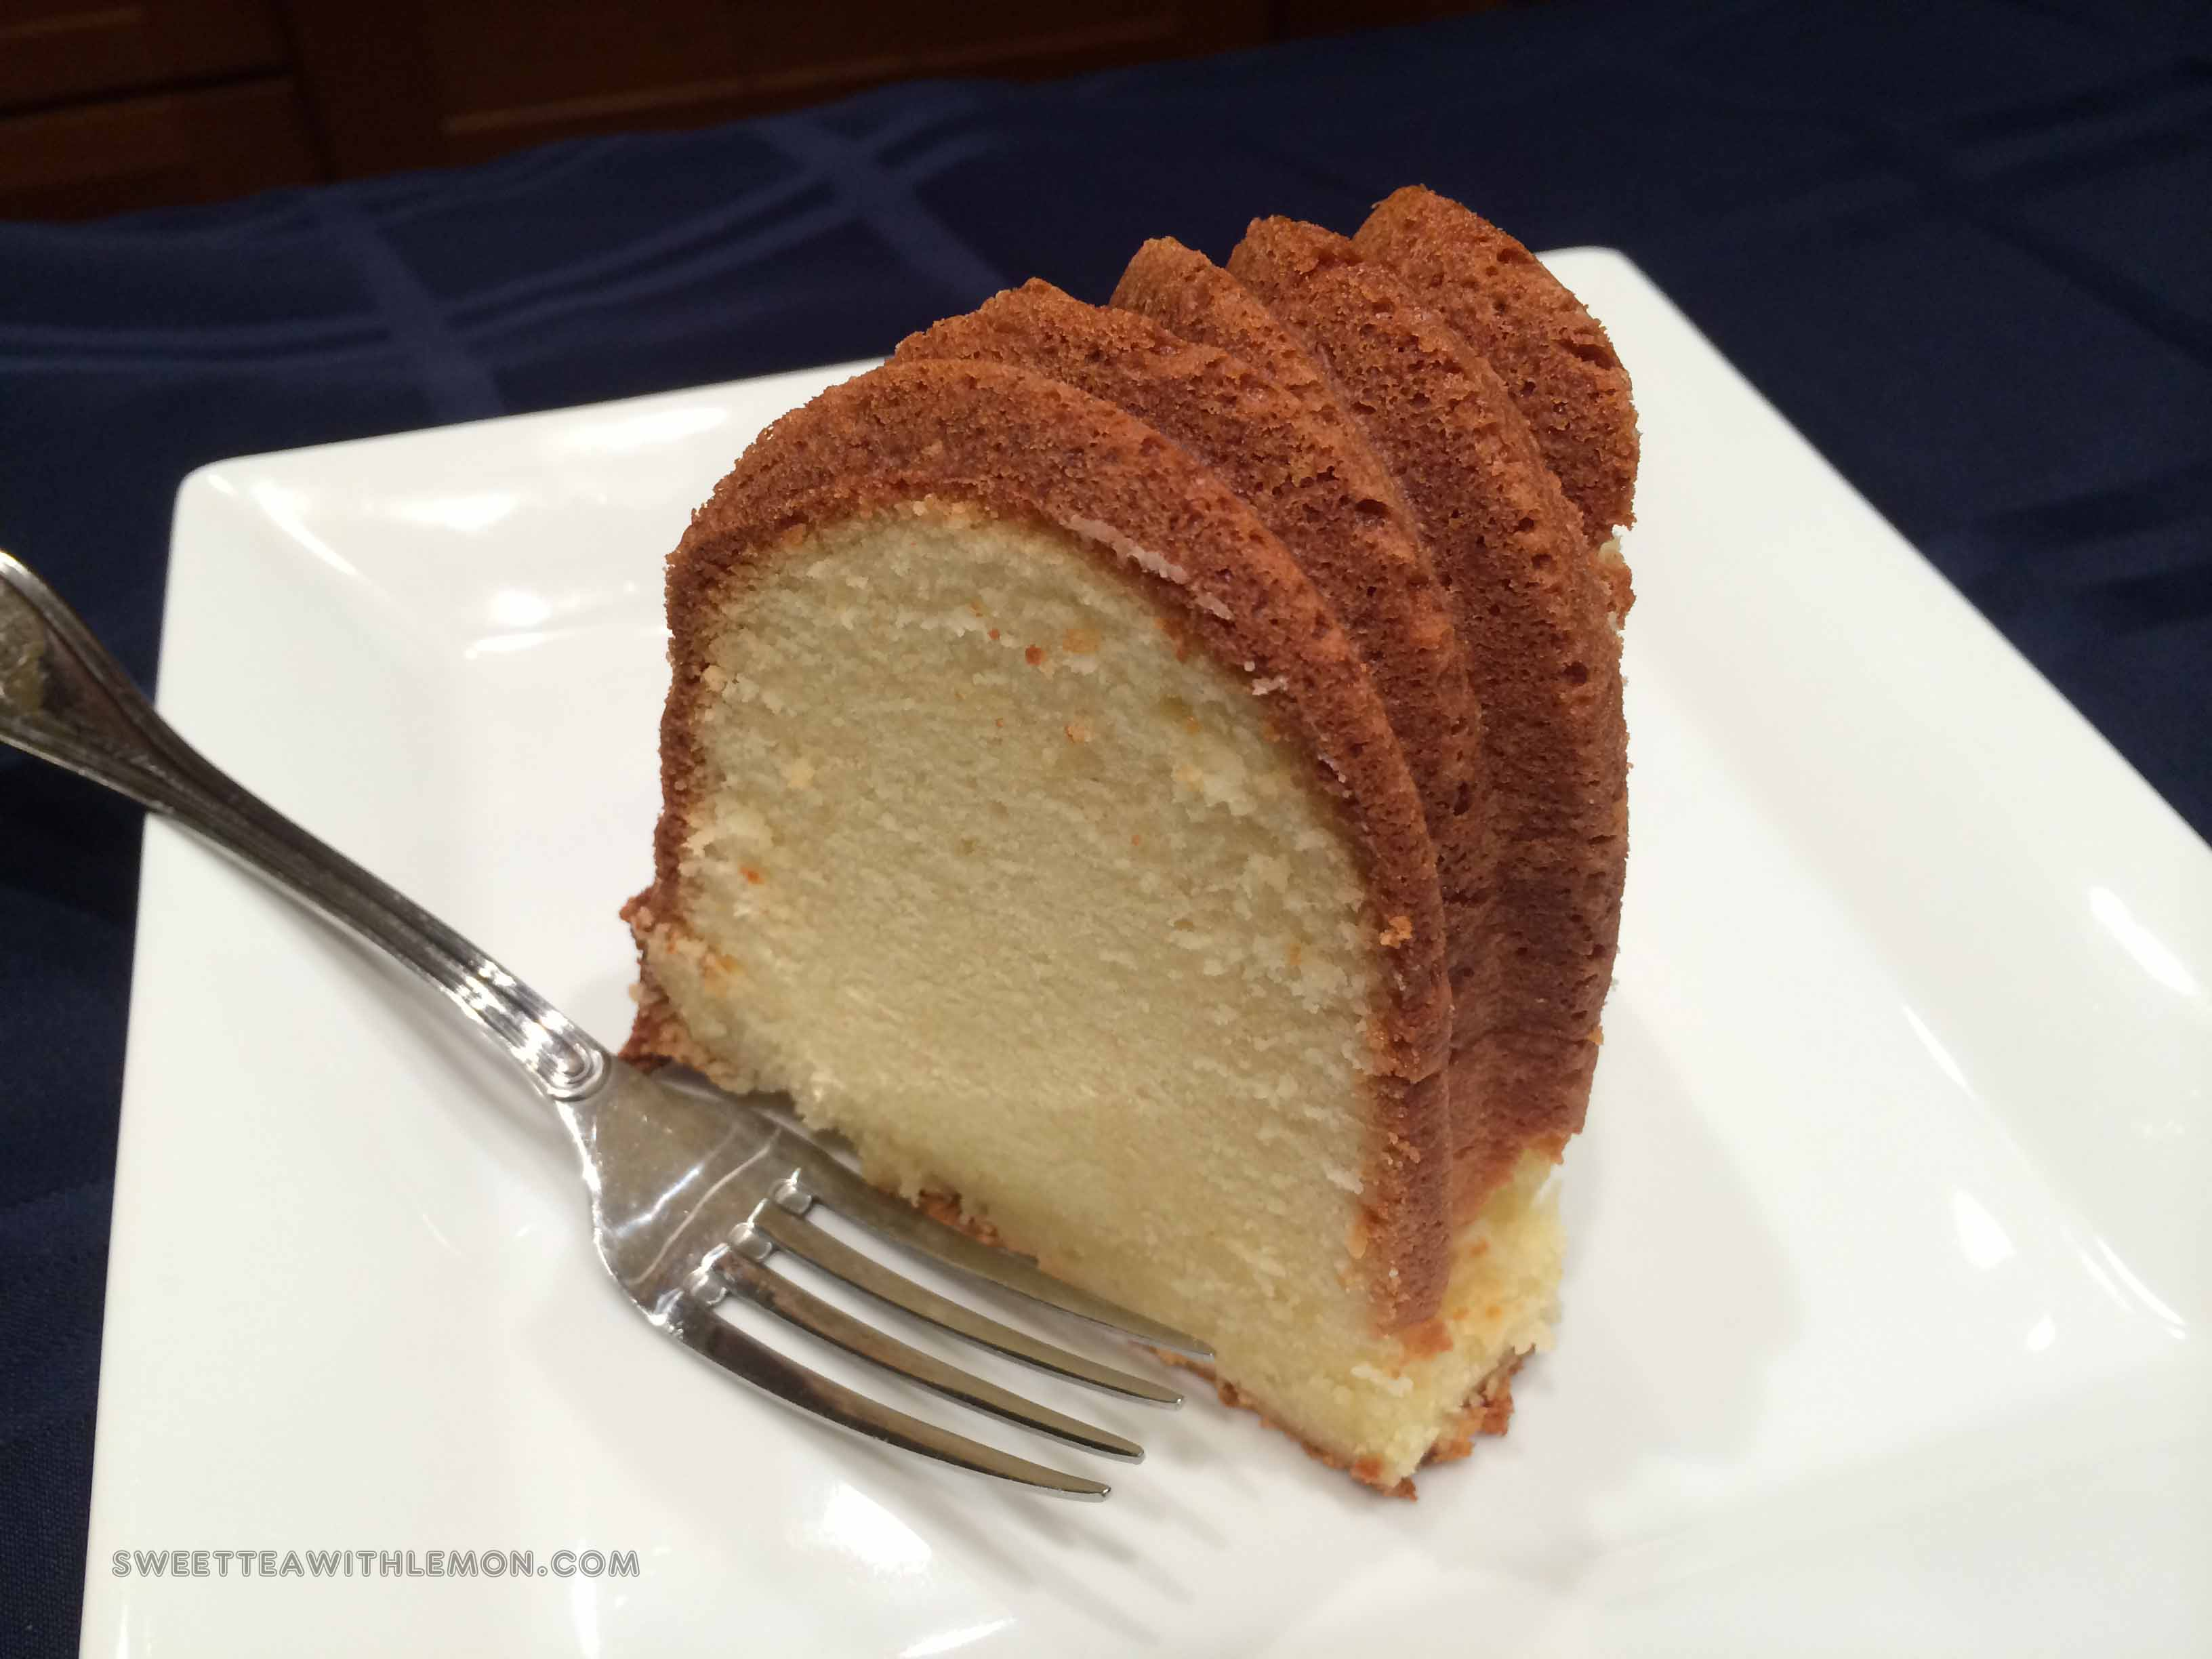 How Long Should Pound Cake Cool In Pan